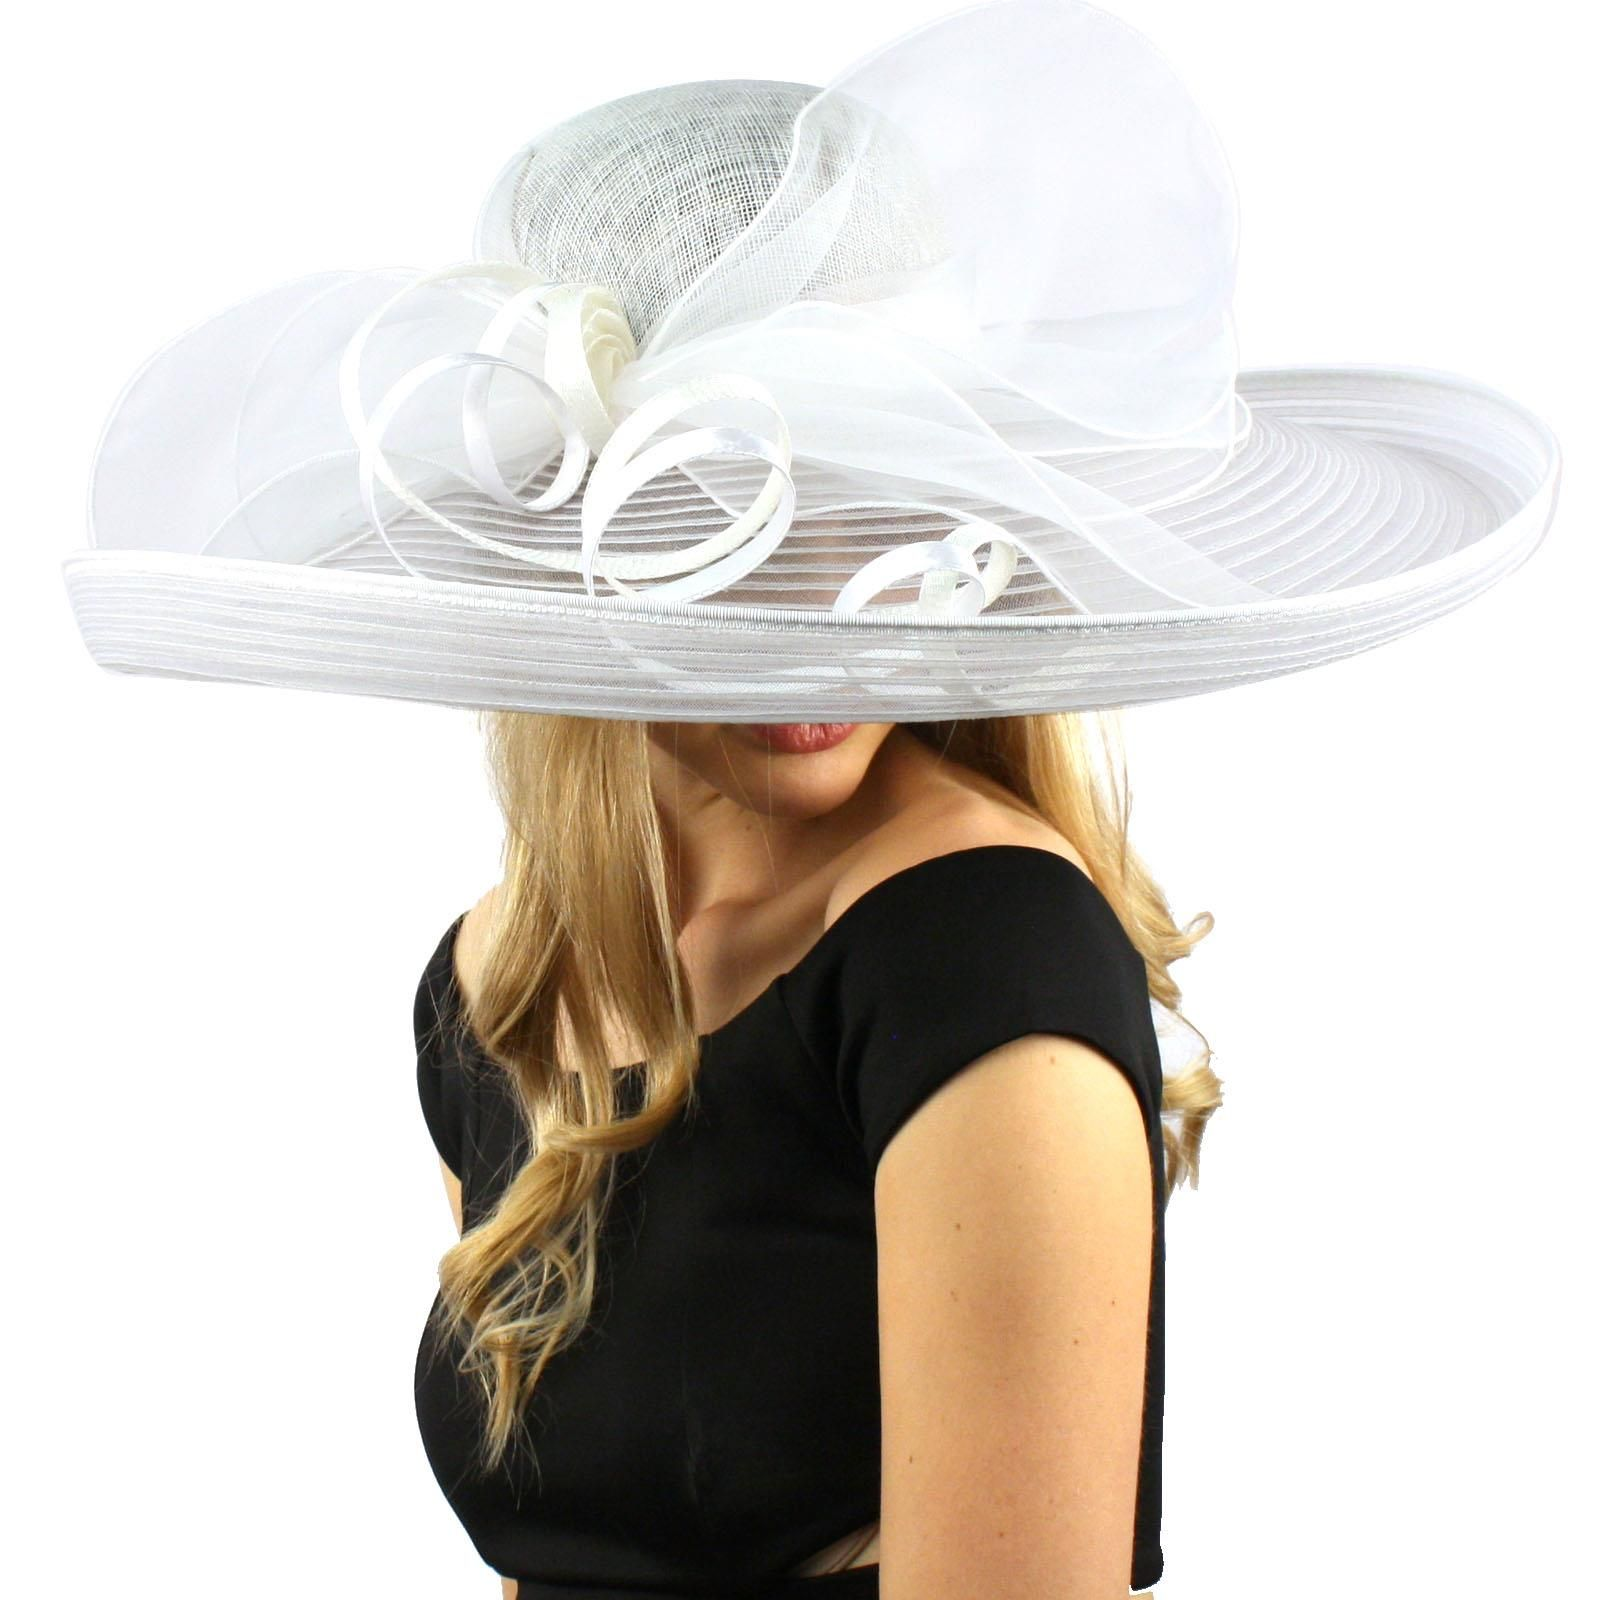 Items similar to Couture Derby Hat-Lampshade Hat on Etsy